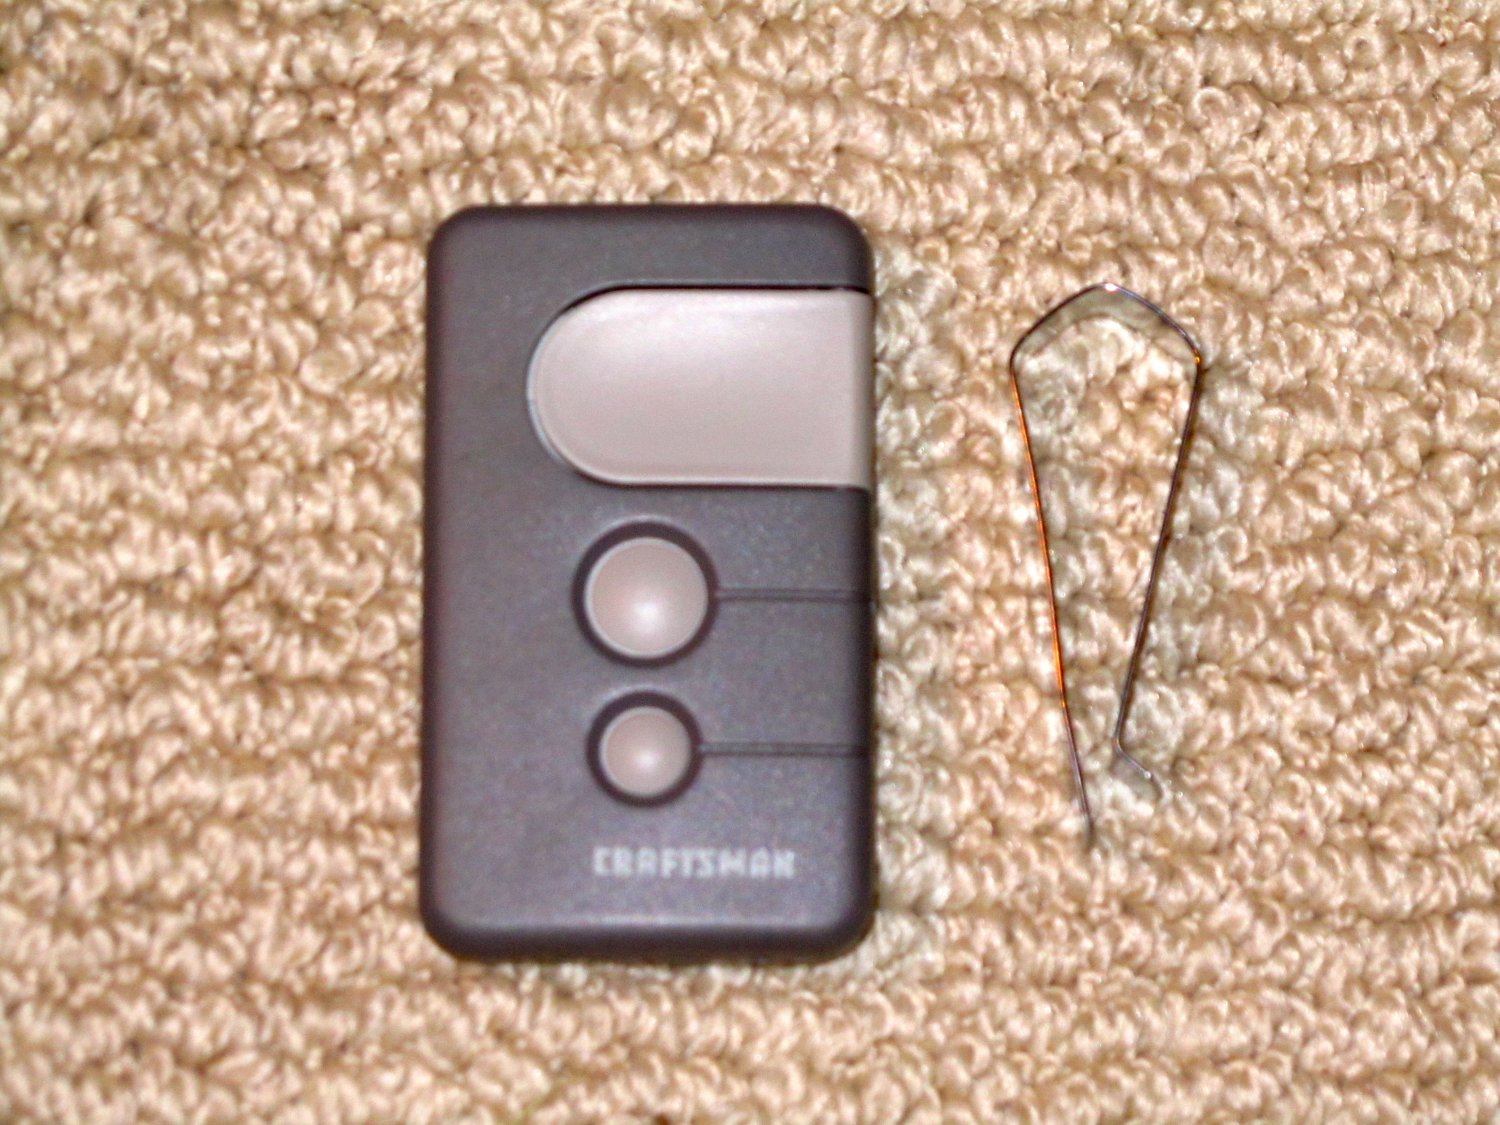 Craftsman Sears Remote 139 53879 Garage Door Opener